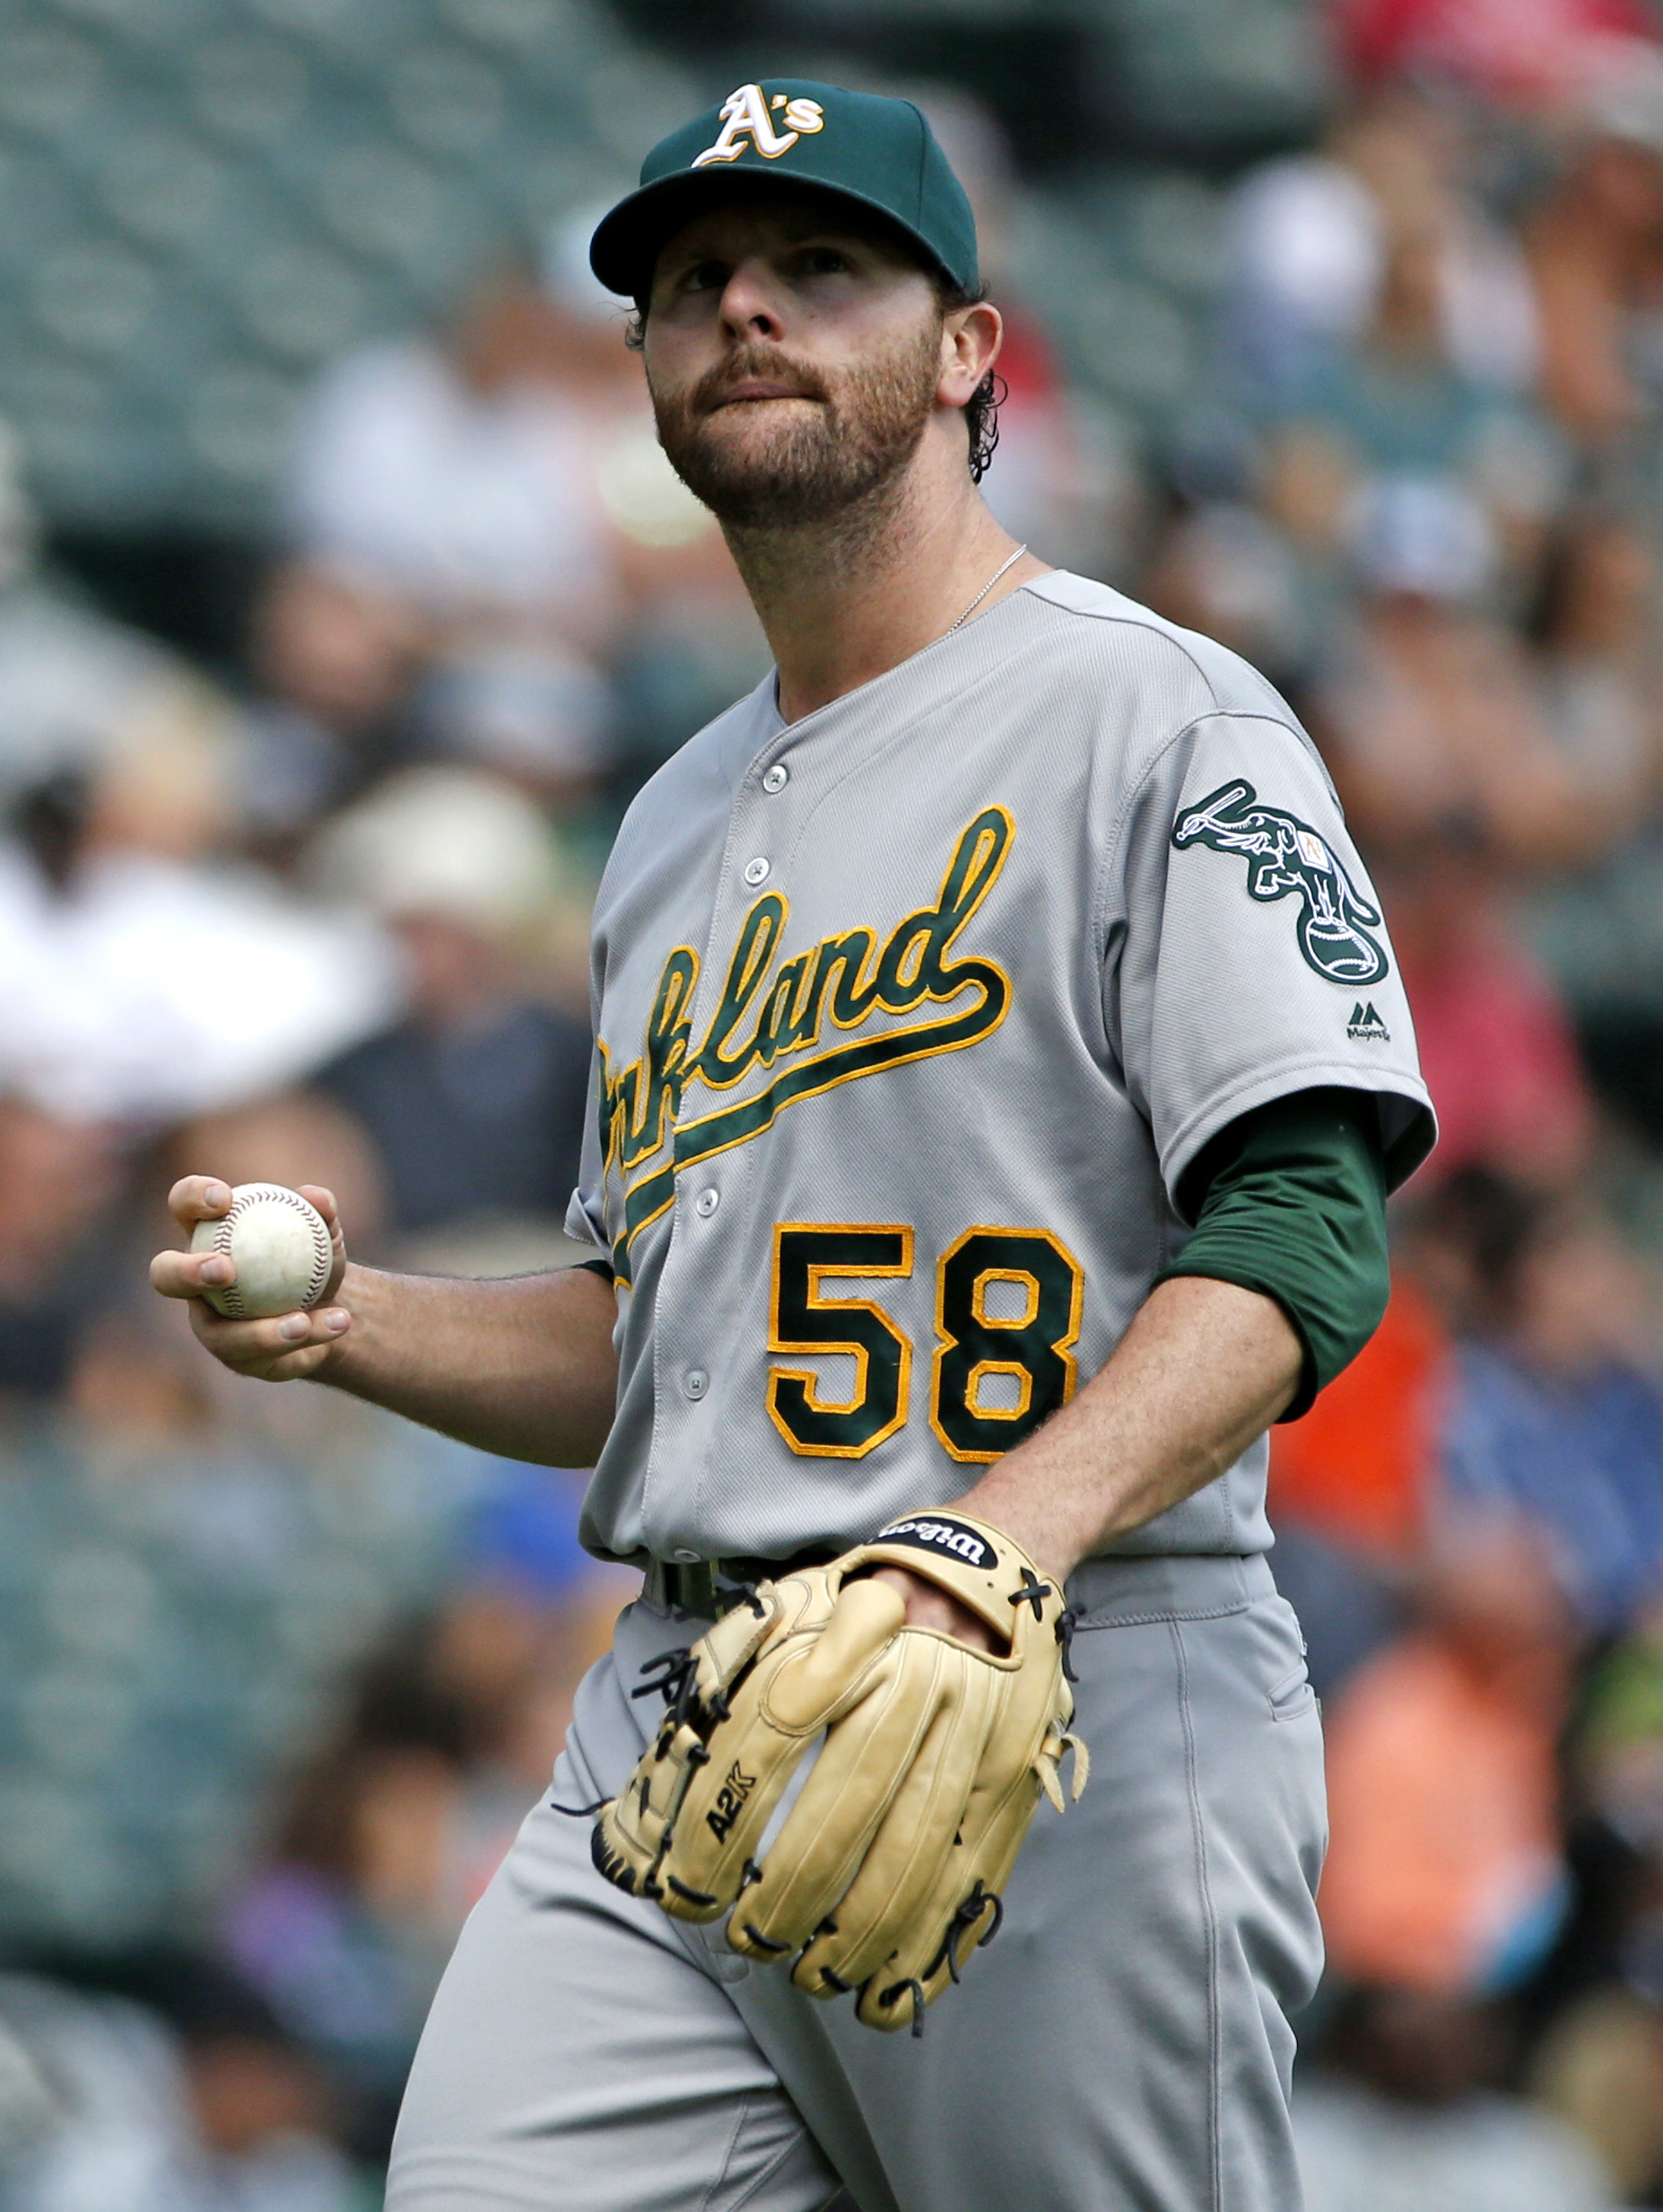 Oakland Athletics starter Zach Neal reacts during the fourth inning of a baseball game against the Chicago White Sox in Chicago, Sunday, Aug. 21, 2016. (AP Photo/Nam Y. Huh)